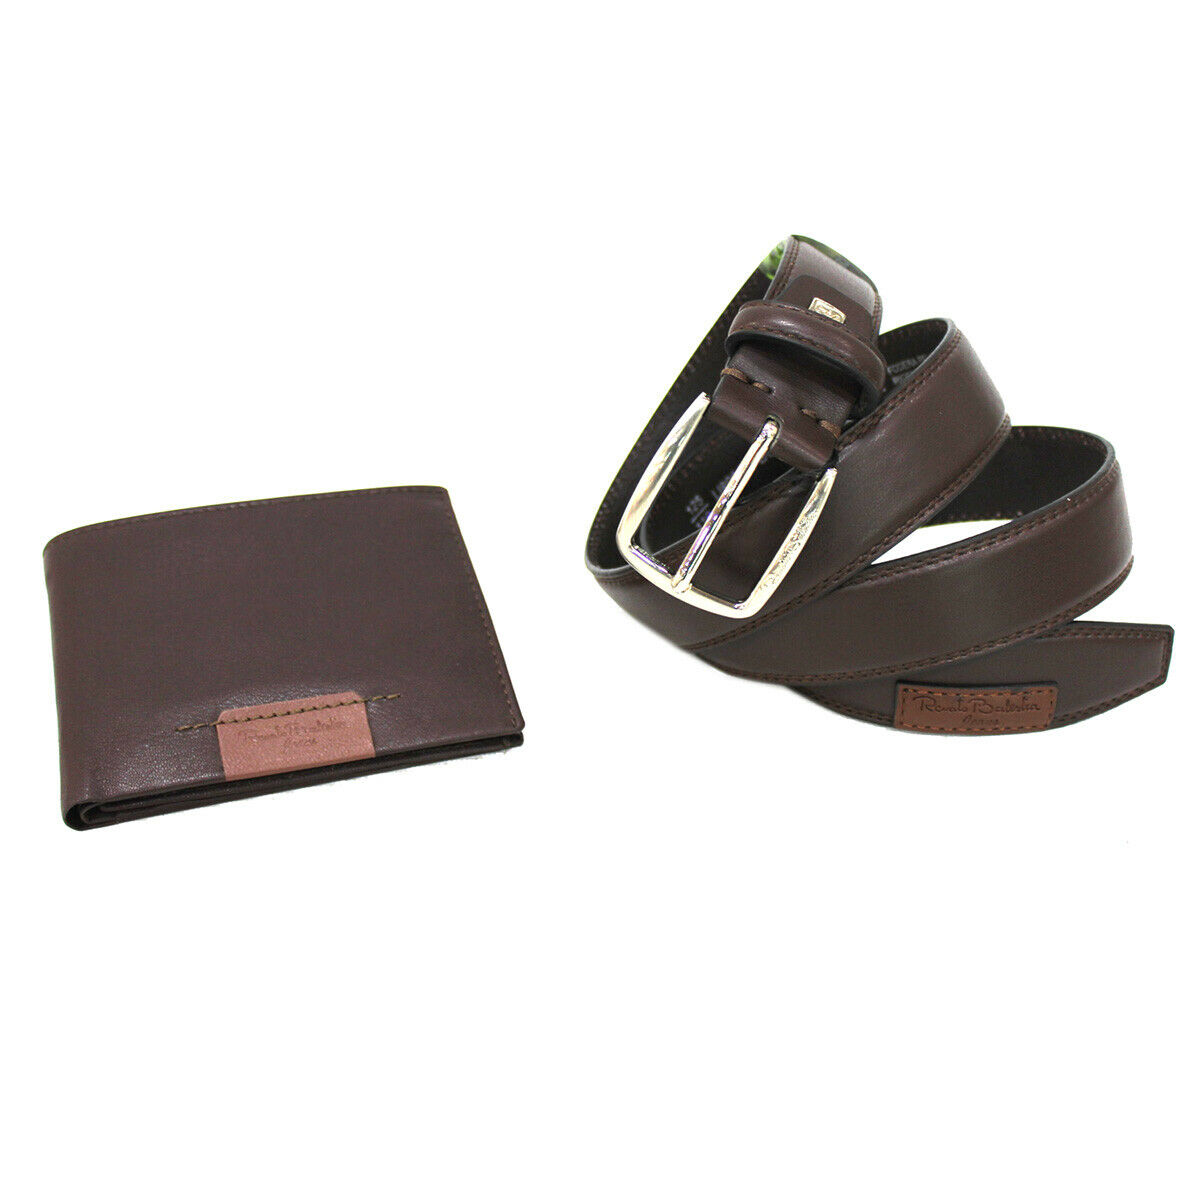 Men's set faux leather belt 35 mm high size 125 and leather wallet in box brown